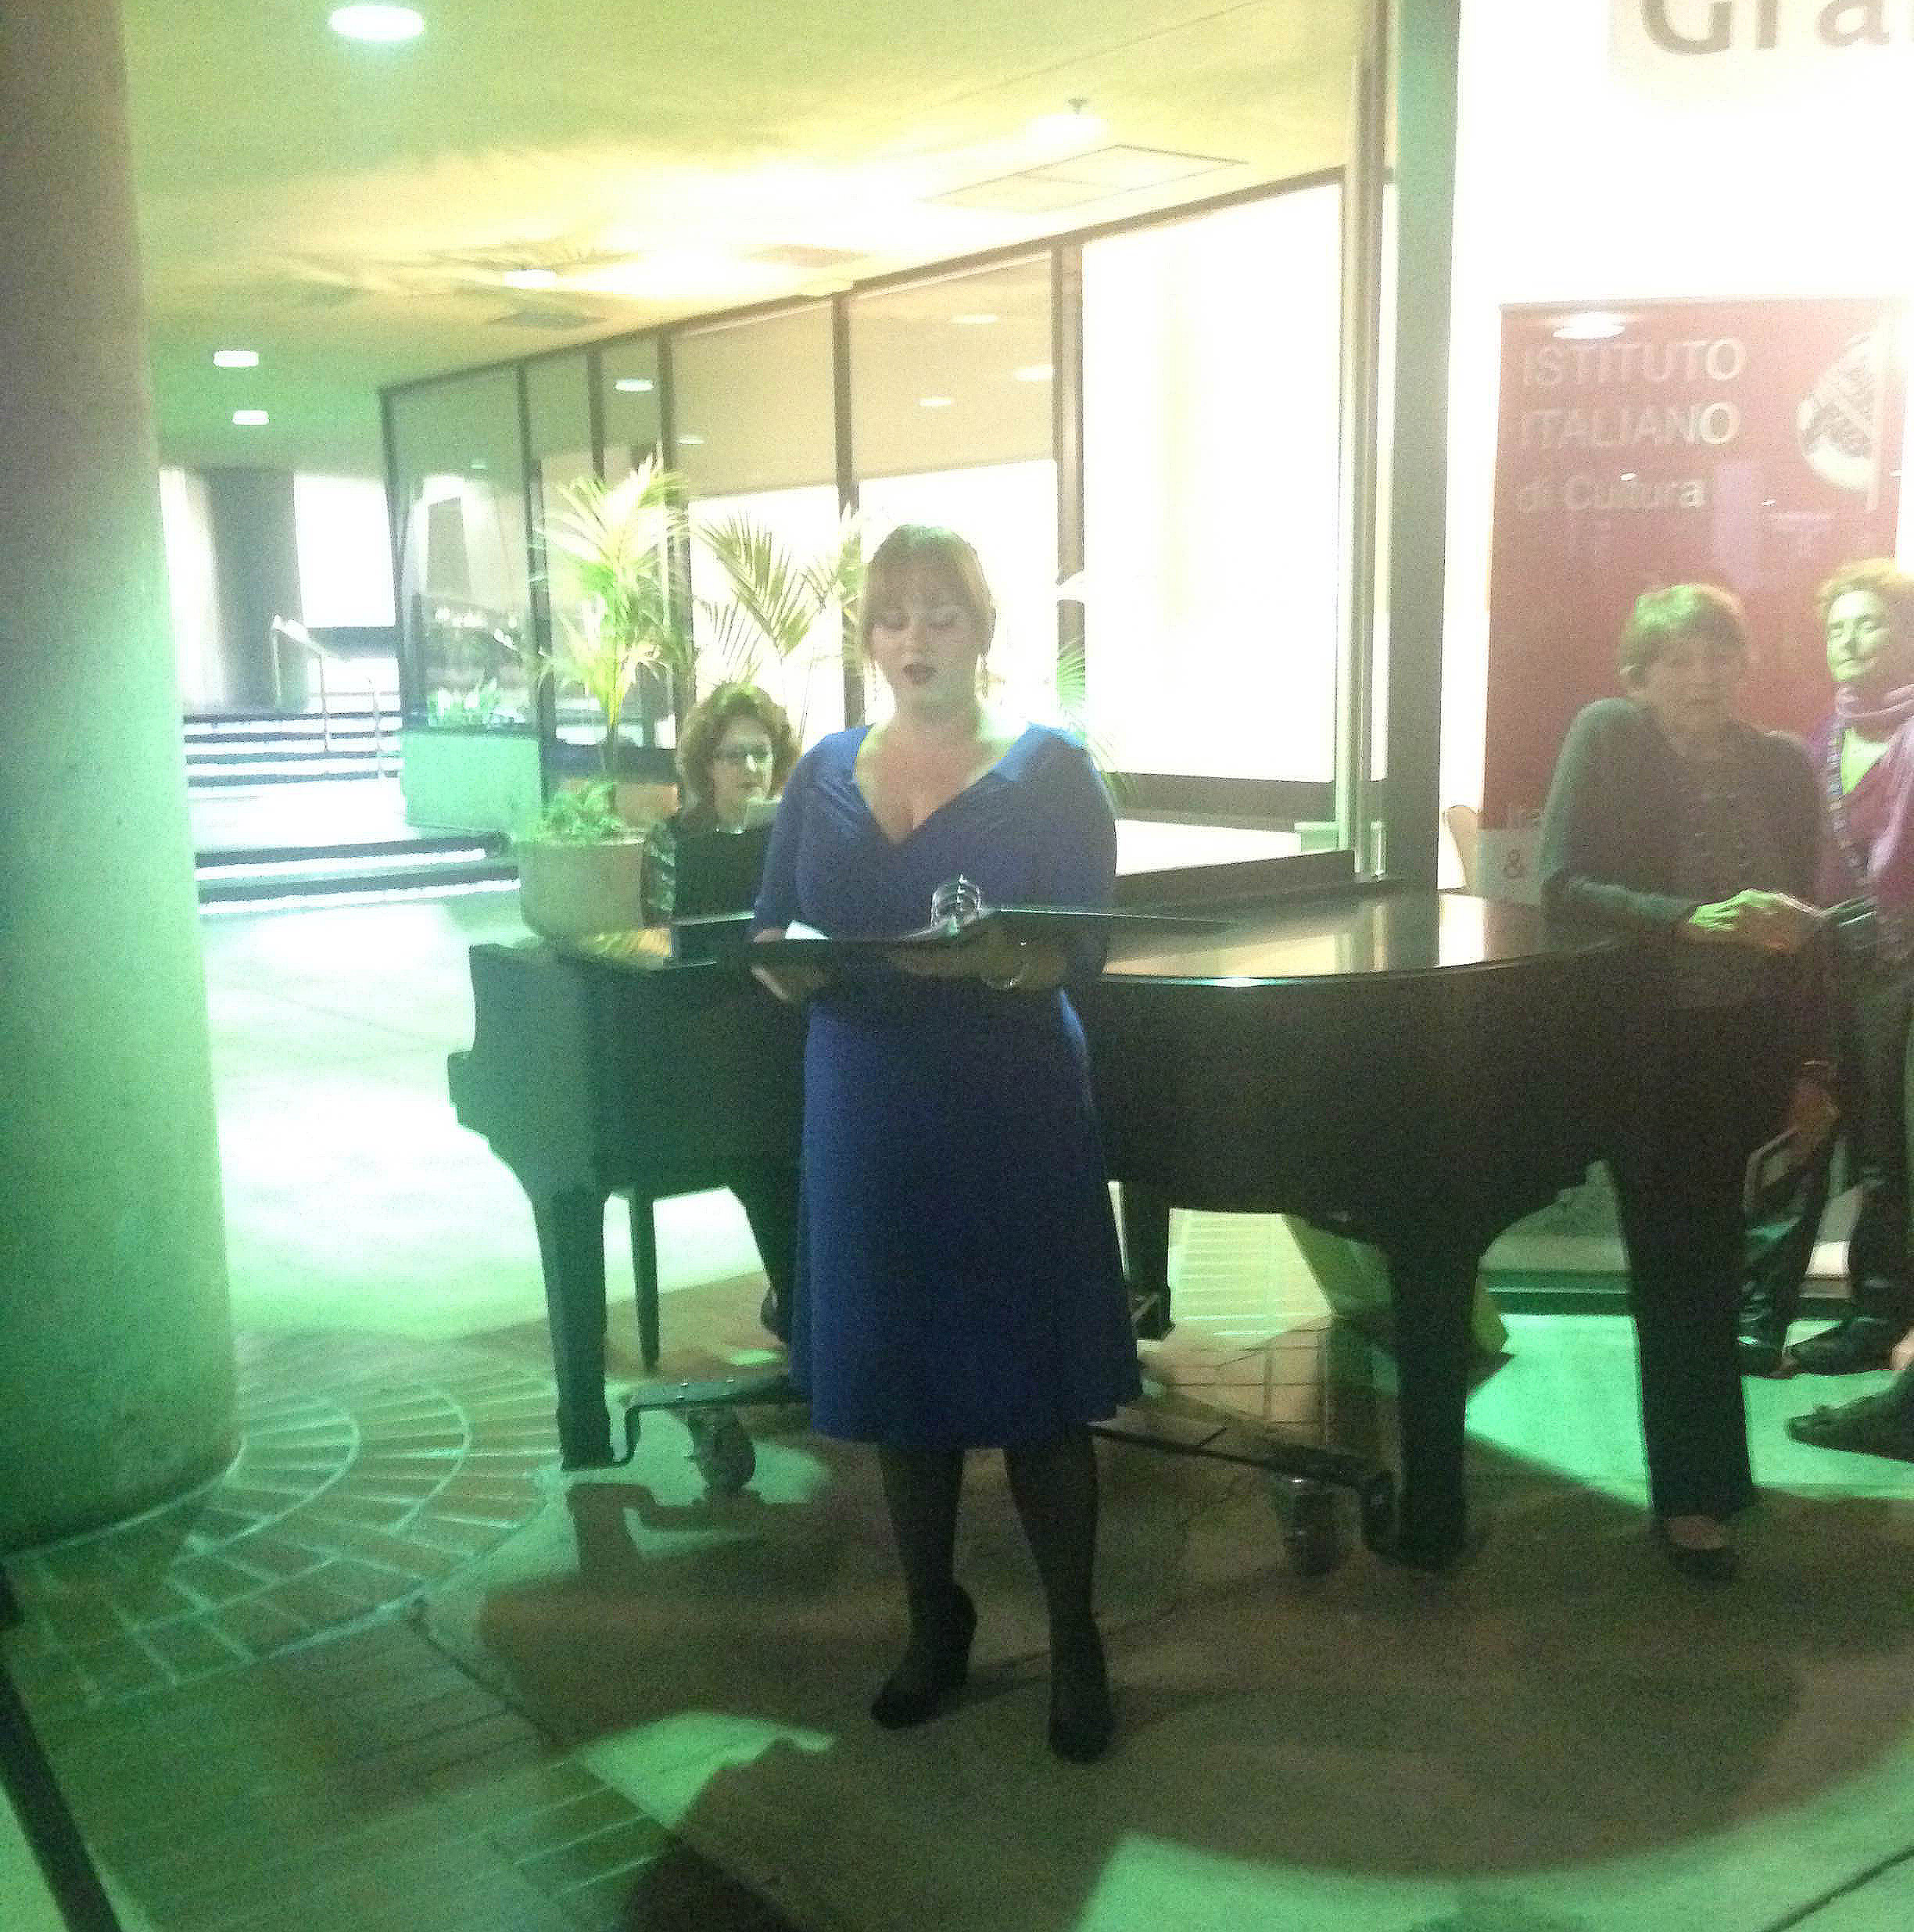 Opera singer, Kathryn Bowden of Merola Foundation Artists performs for the Istituto Italiano Grand Opening.